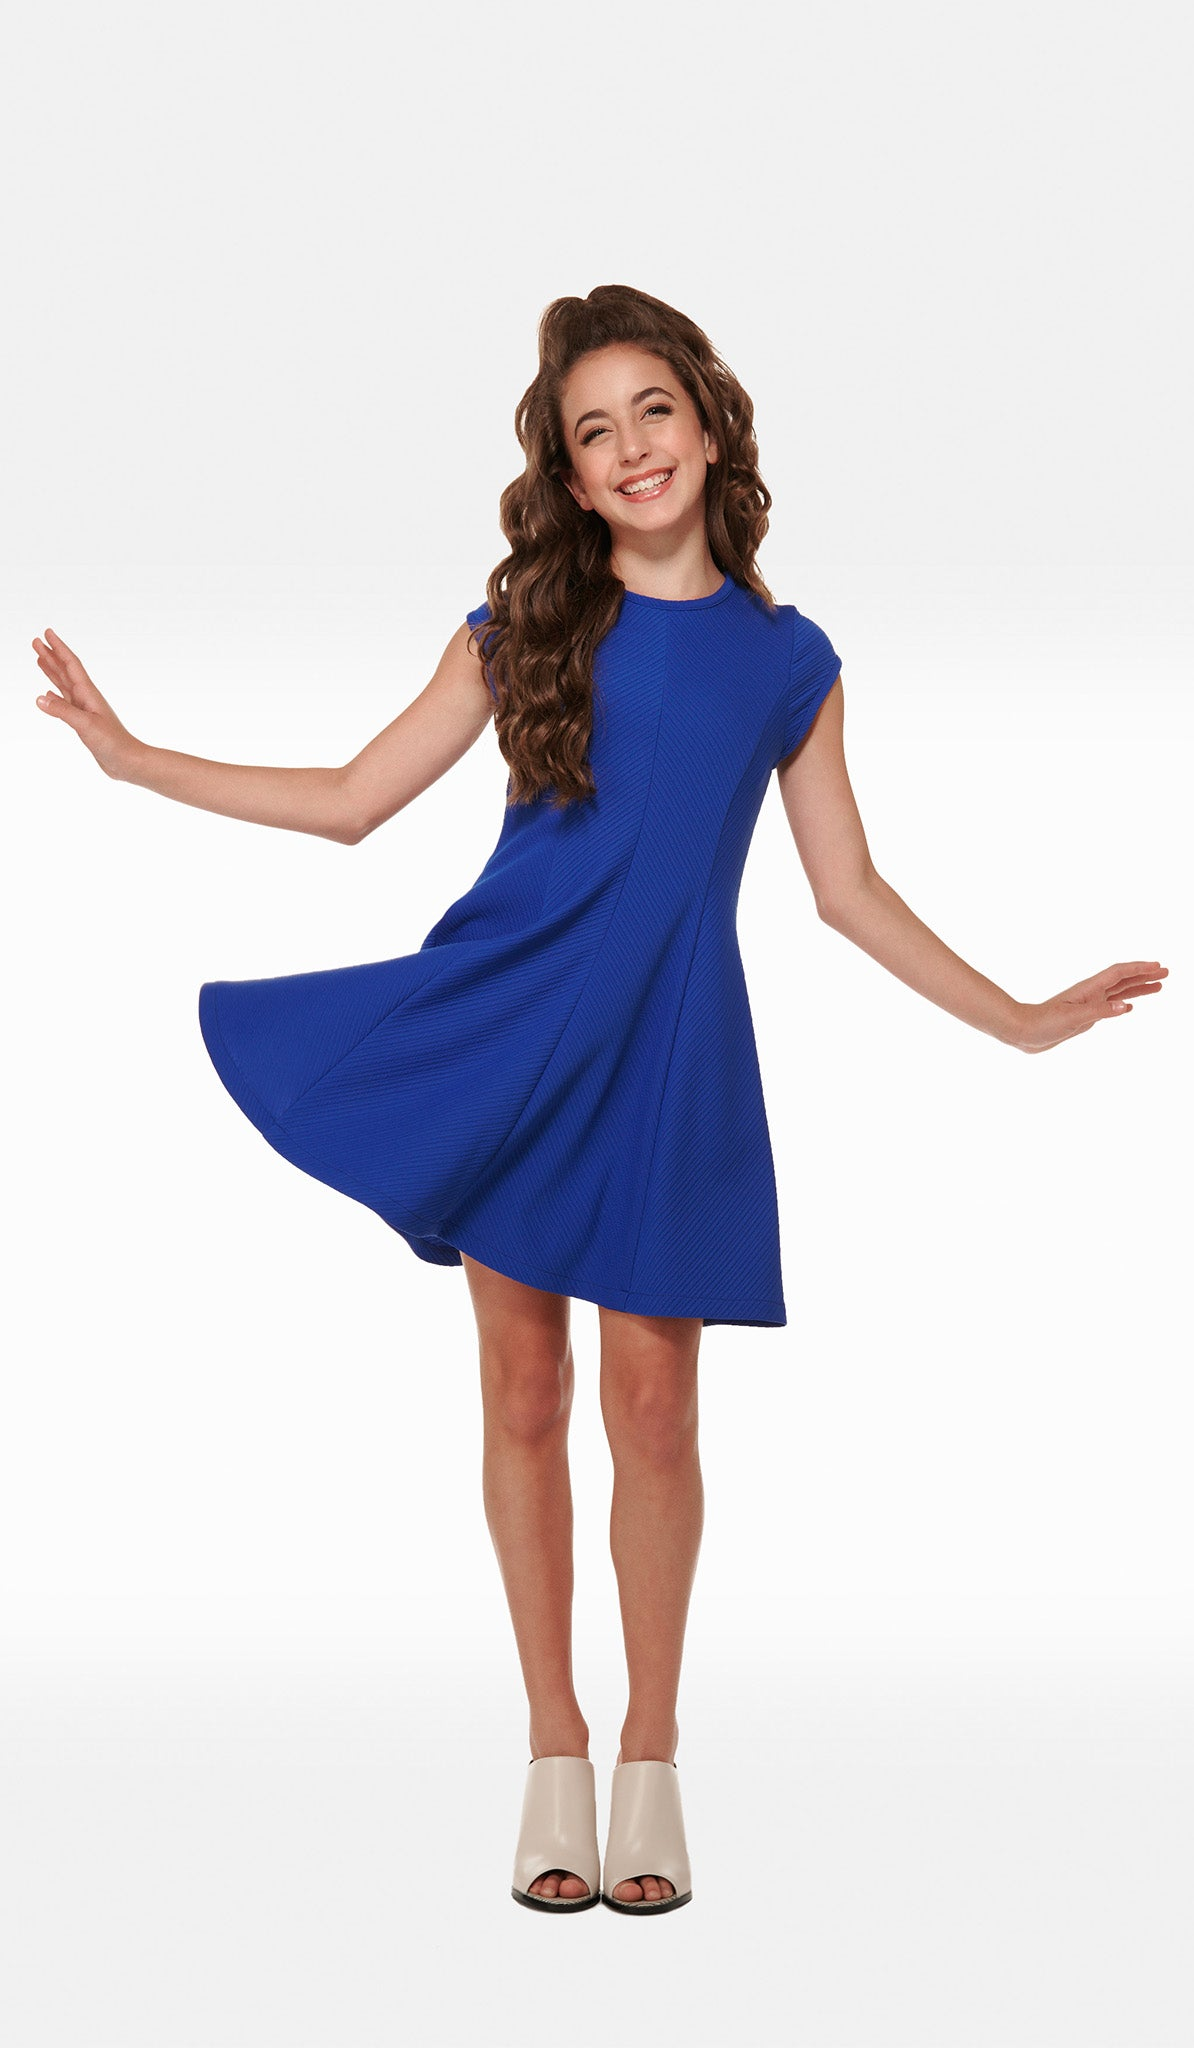 The Sally Miller Allie Dress - Royal textured stretch knit fit and flare dress with cap sleeves